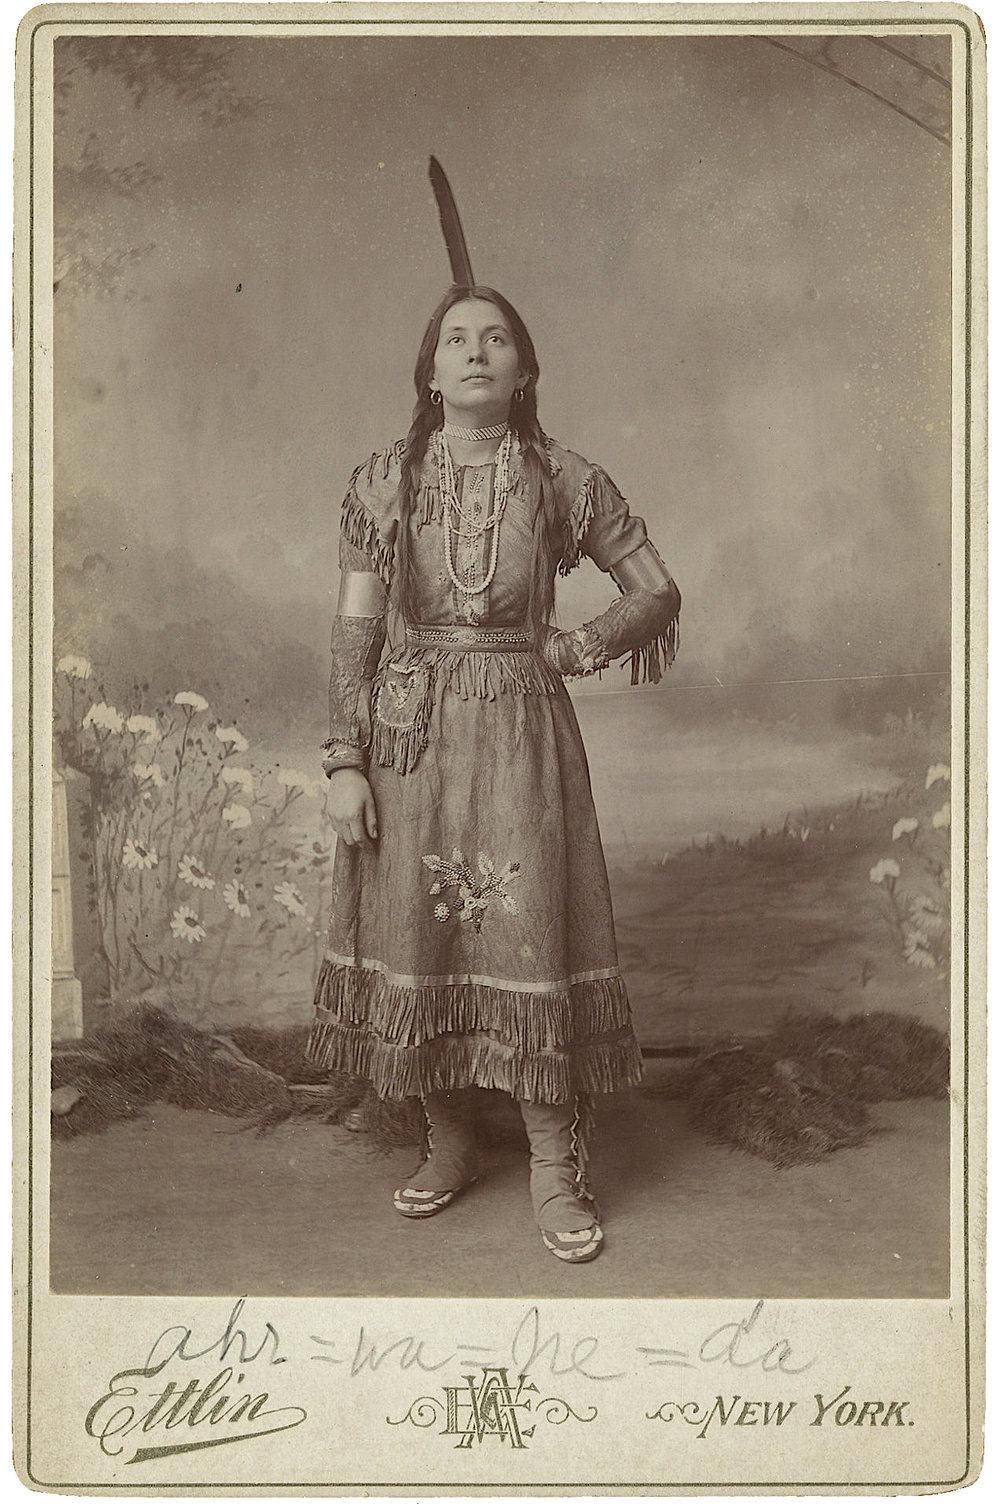 Performer in Native American Costume. Cabinet Card Photograph by W. A. Ettlin, Ettlin's Portraits, 17 Chatham Square, New York, ca. 1905.  Courtesy of Heritage Auctions